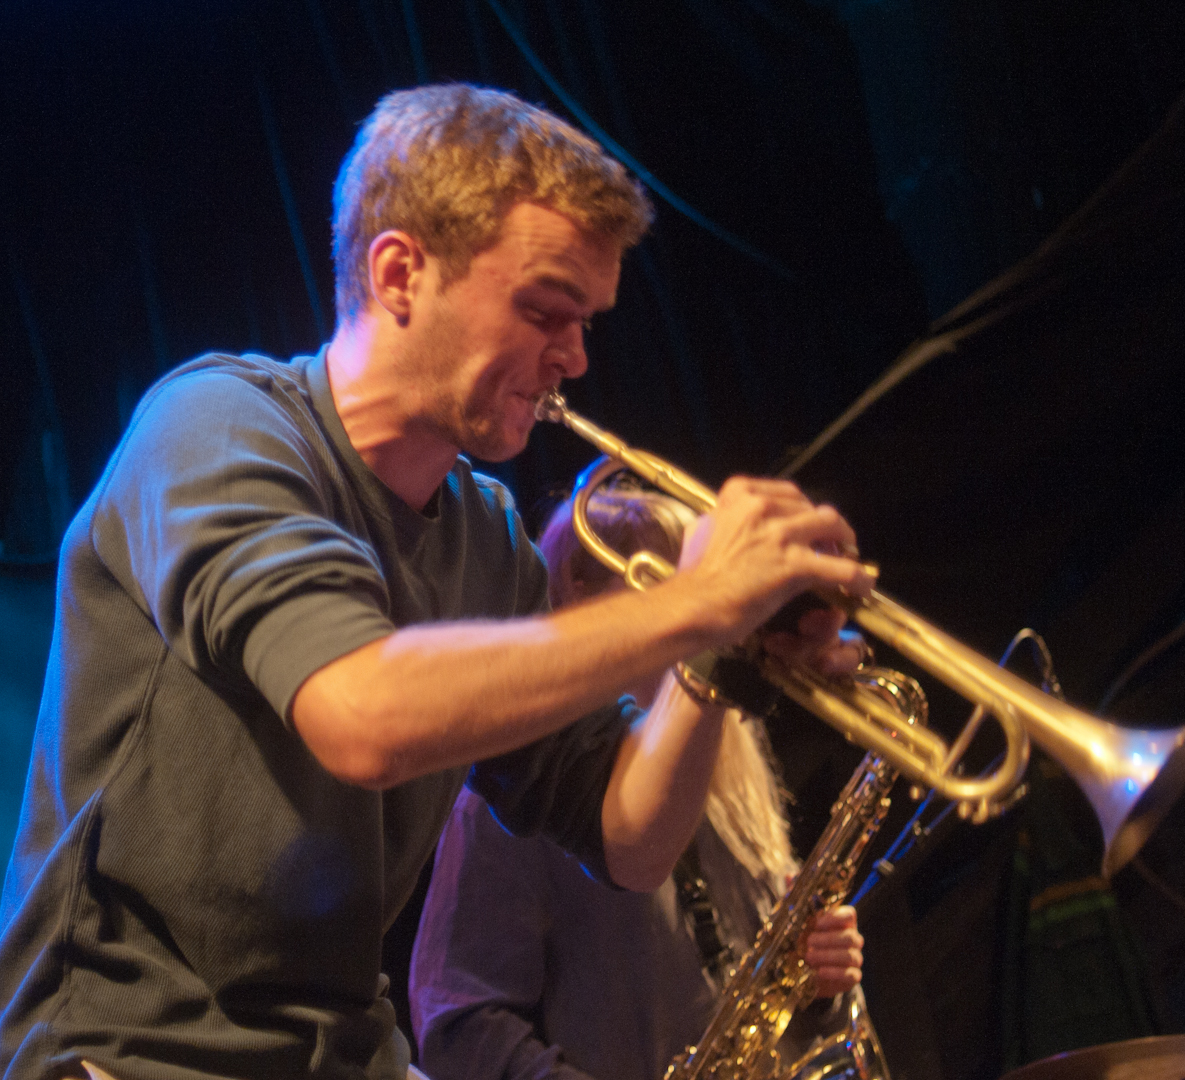 Ross Eustis at the Oslo Jazz Festival Jam Sessions